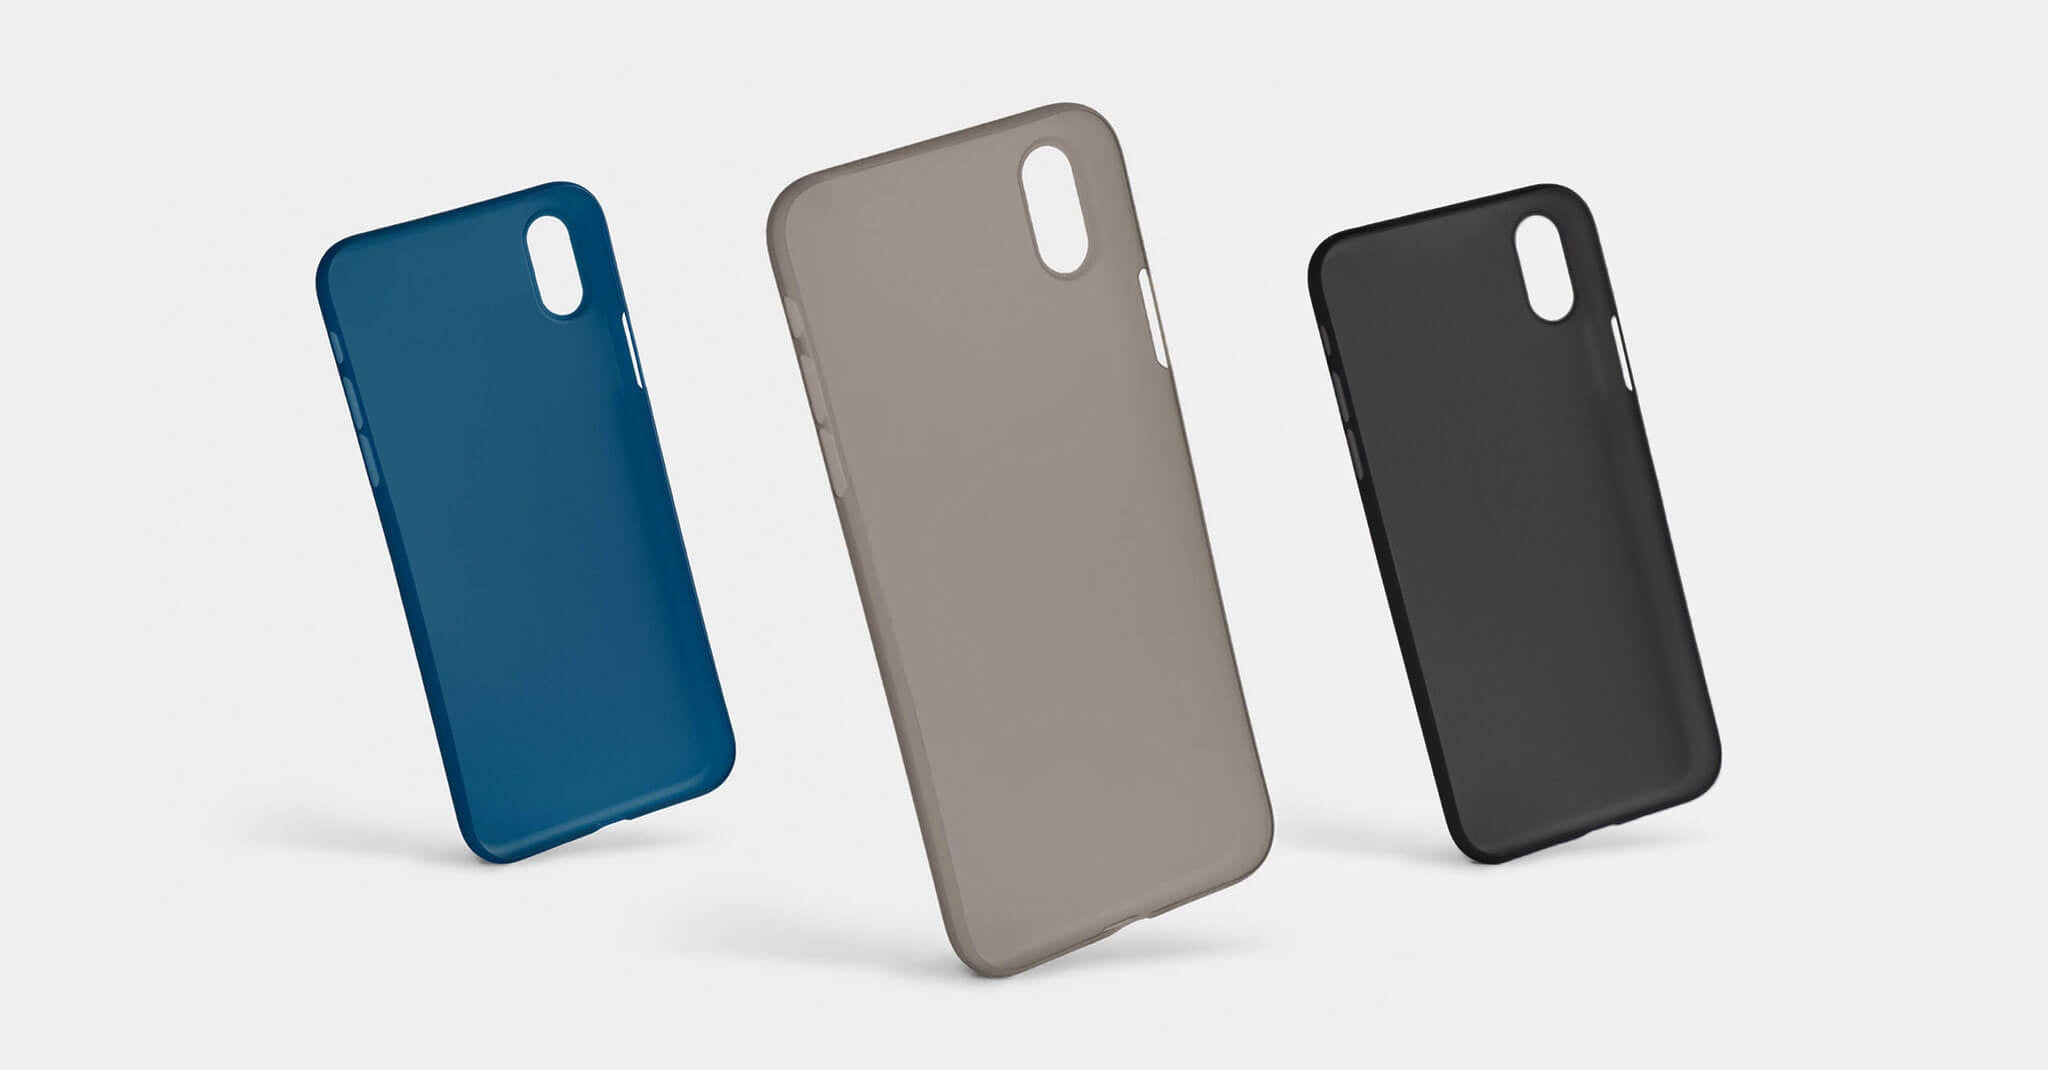 Super thin lightweight iPhone XS case by totallee